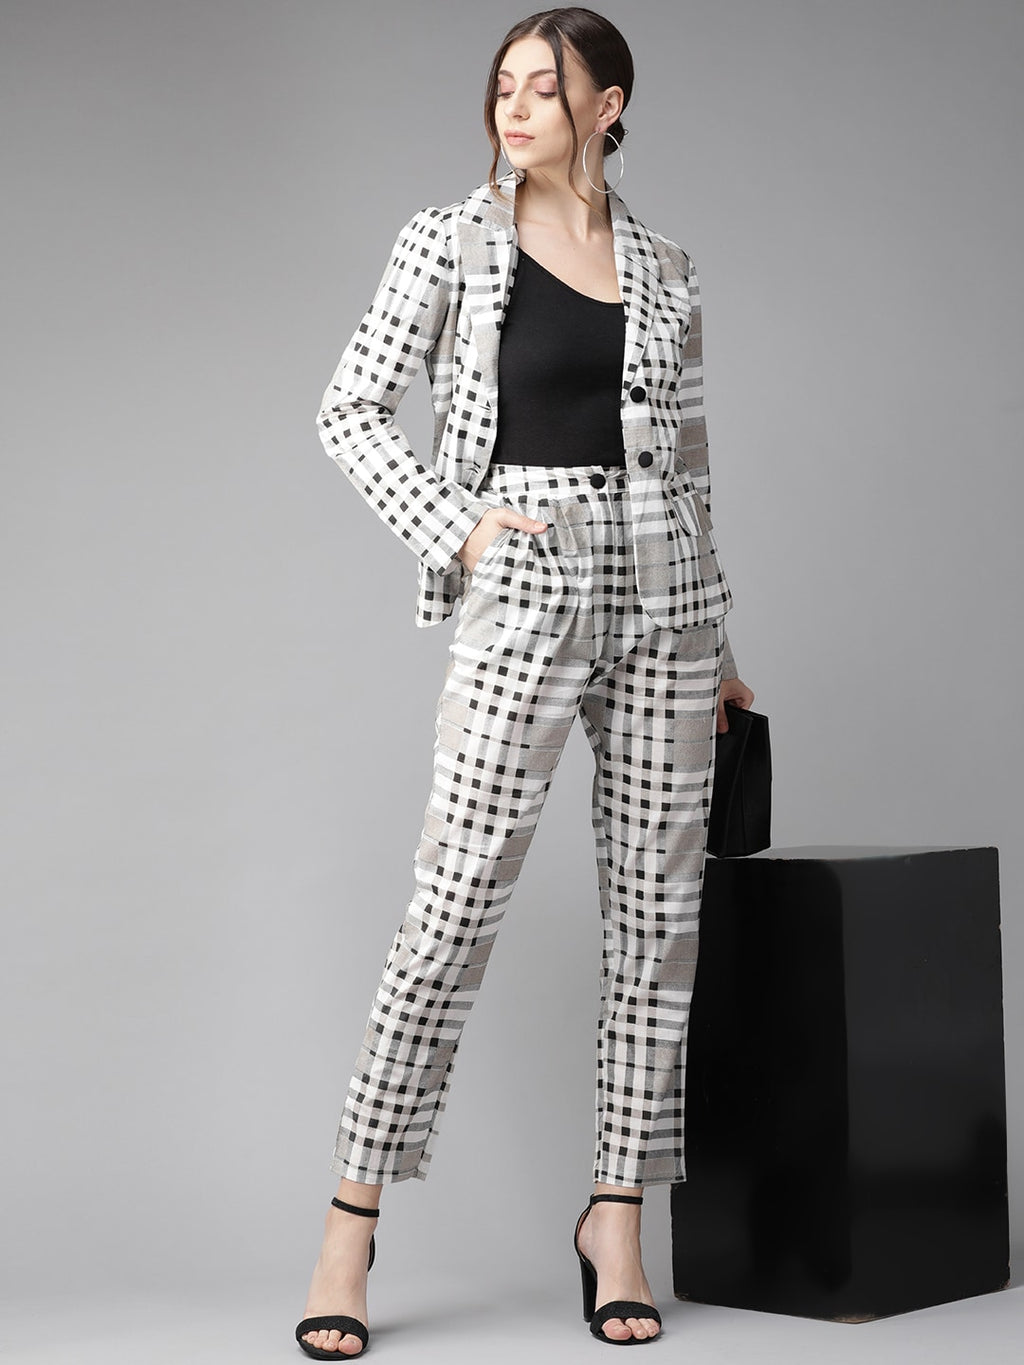 White & Black Checked Blazer with Trousers (Fully Stitched)